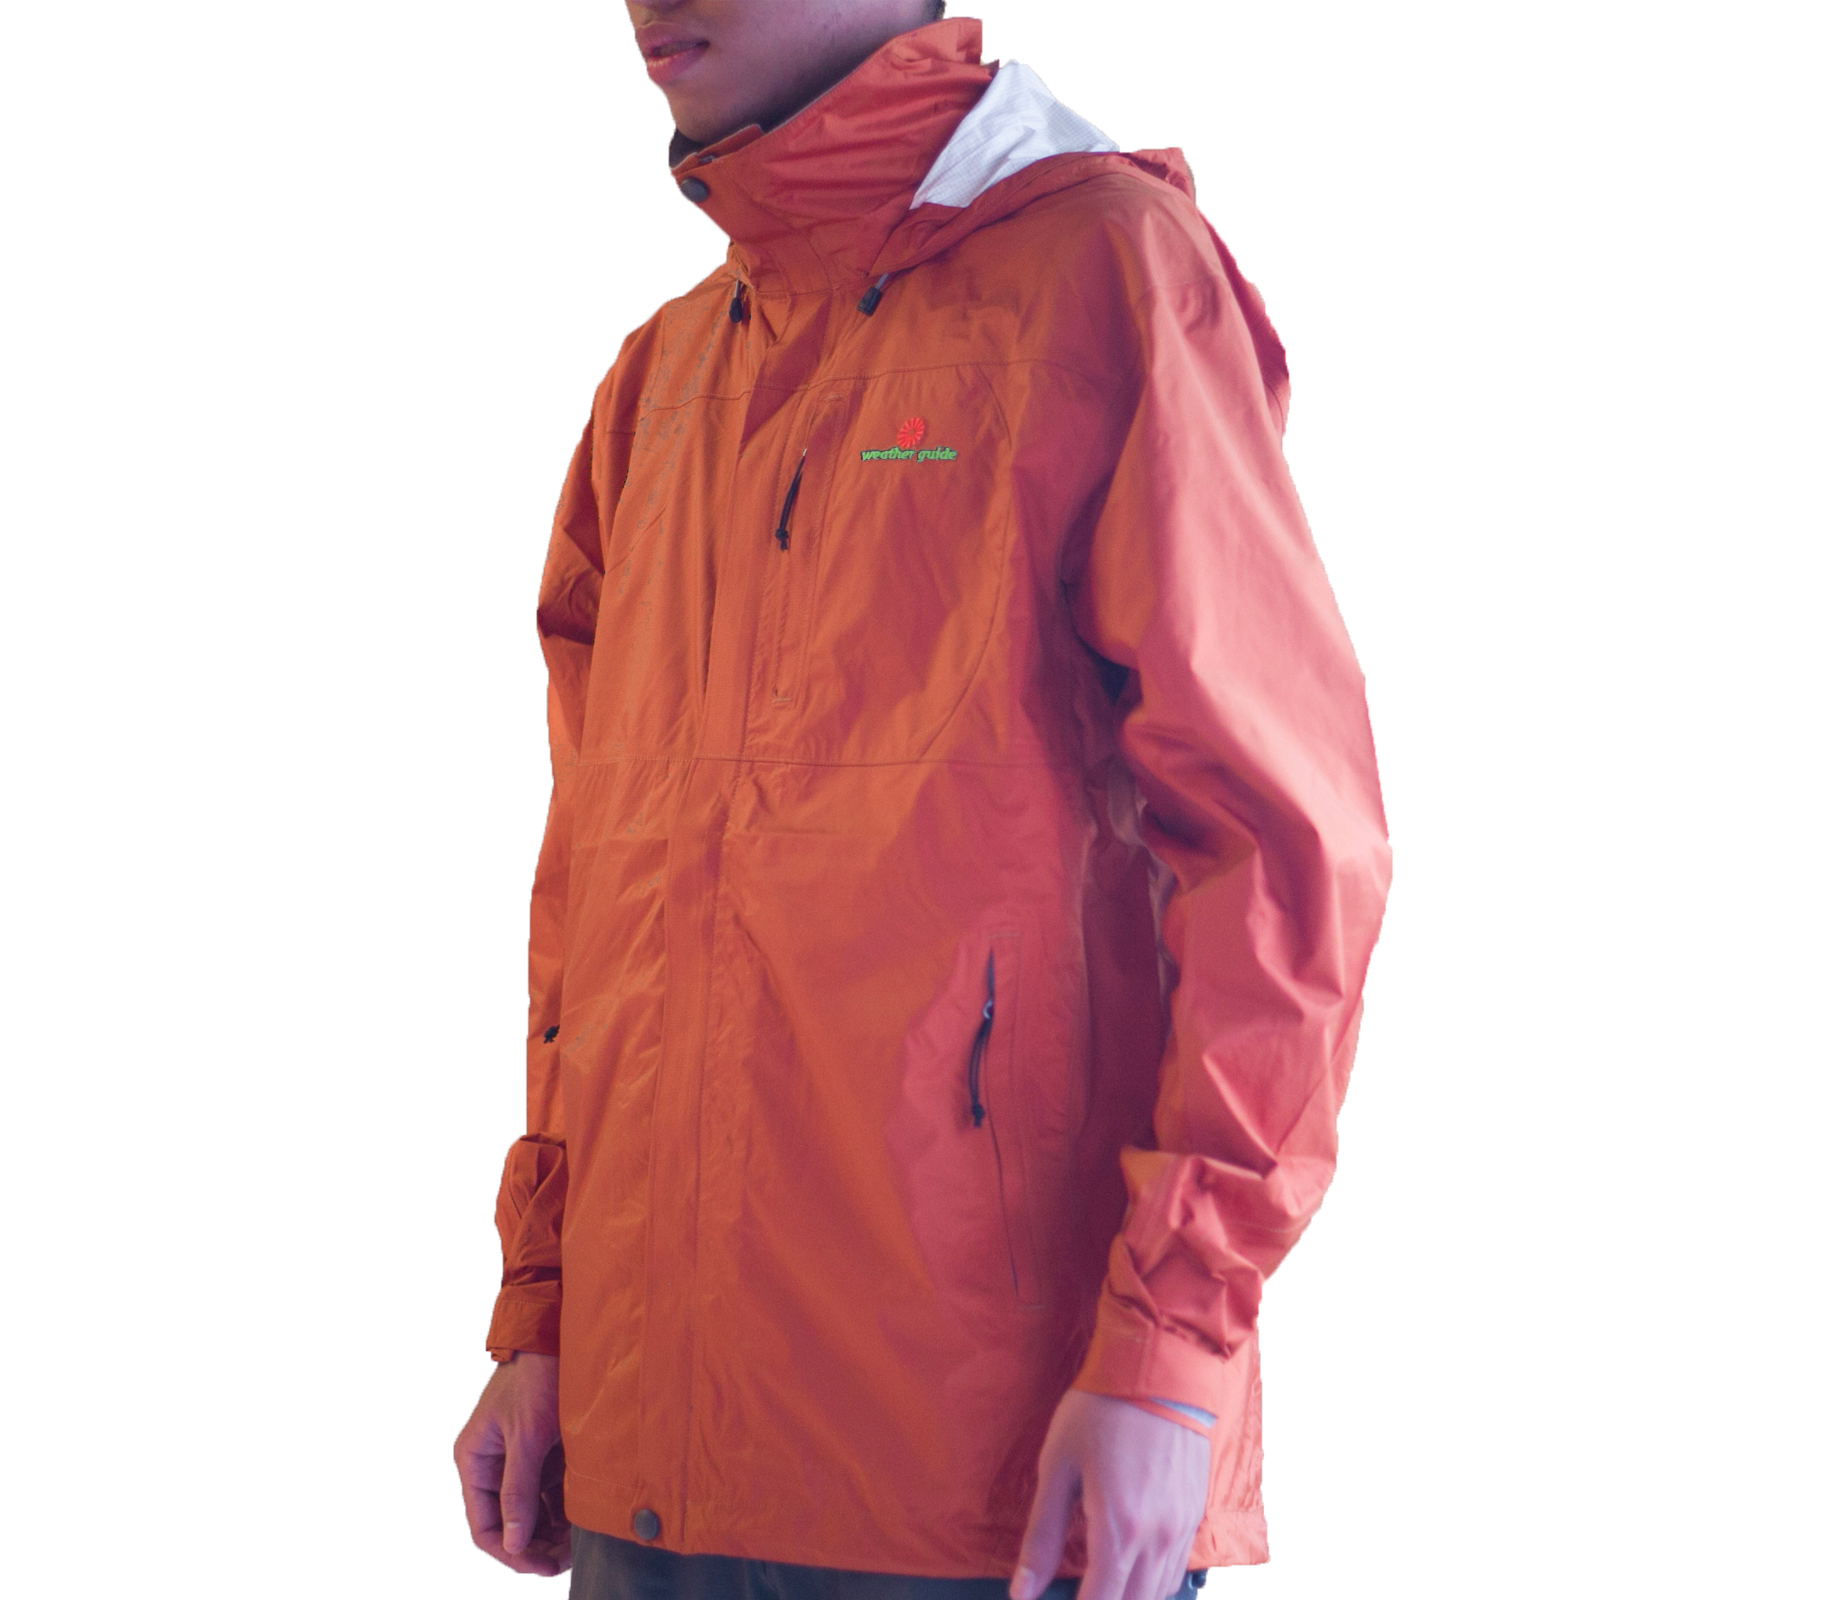 2-ao-khoac-gio-nam-25-lop-Weather-Guide-Mens-8289-wetrekvn